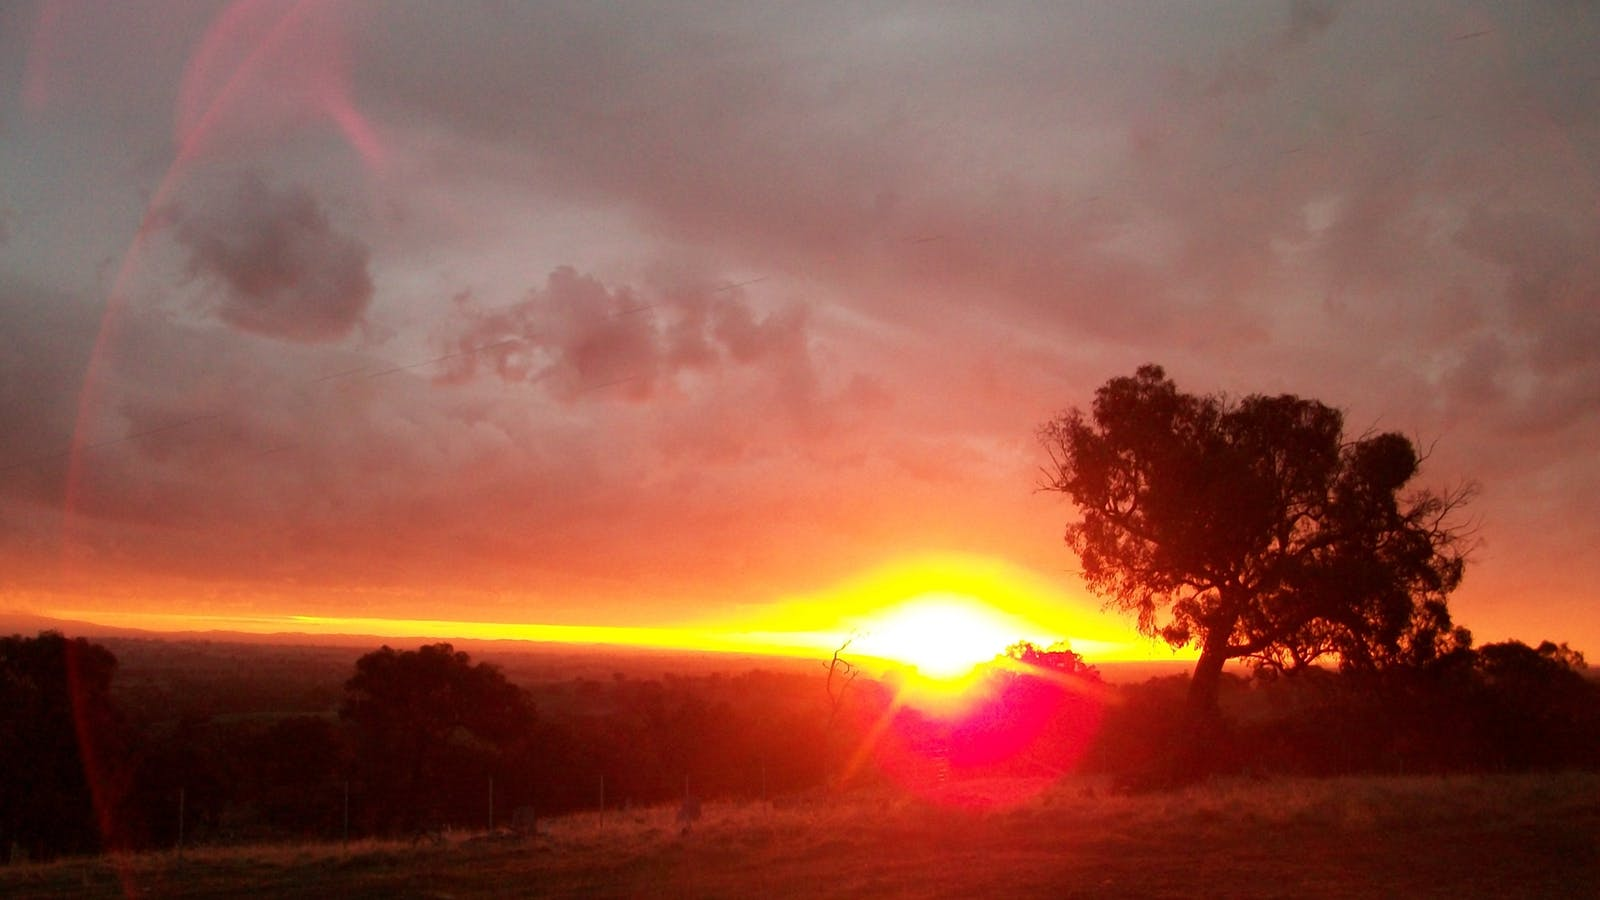 Sunset at Heathcote Views